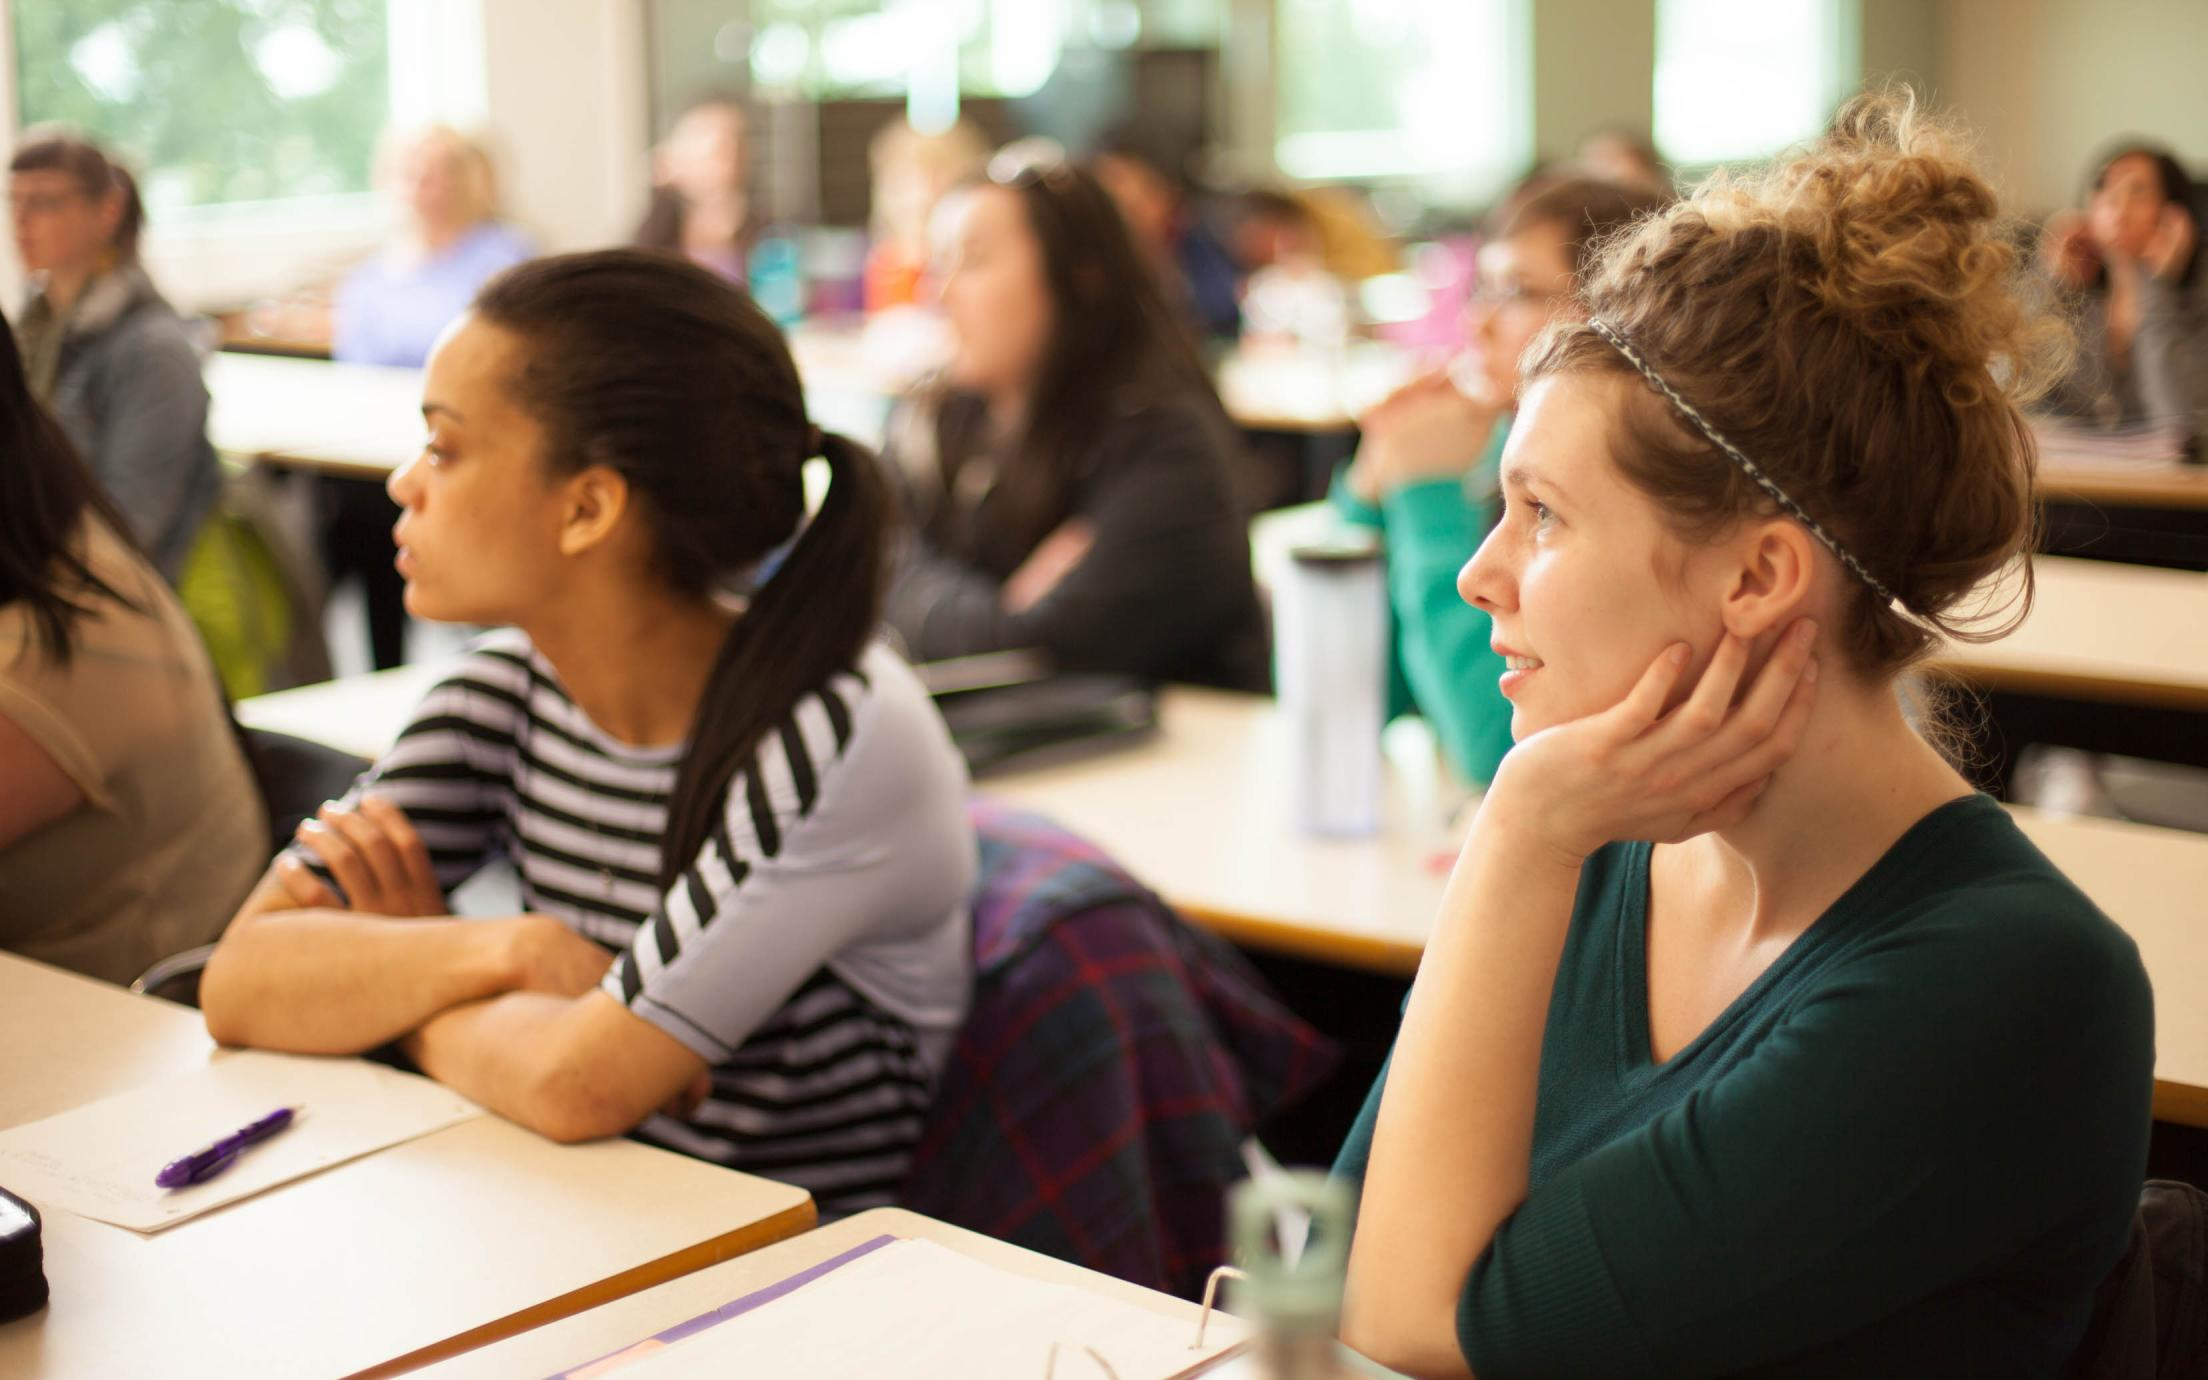 Bachelor of Social Work Students in class